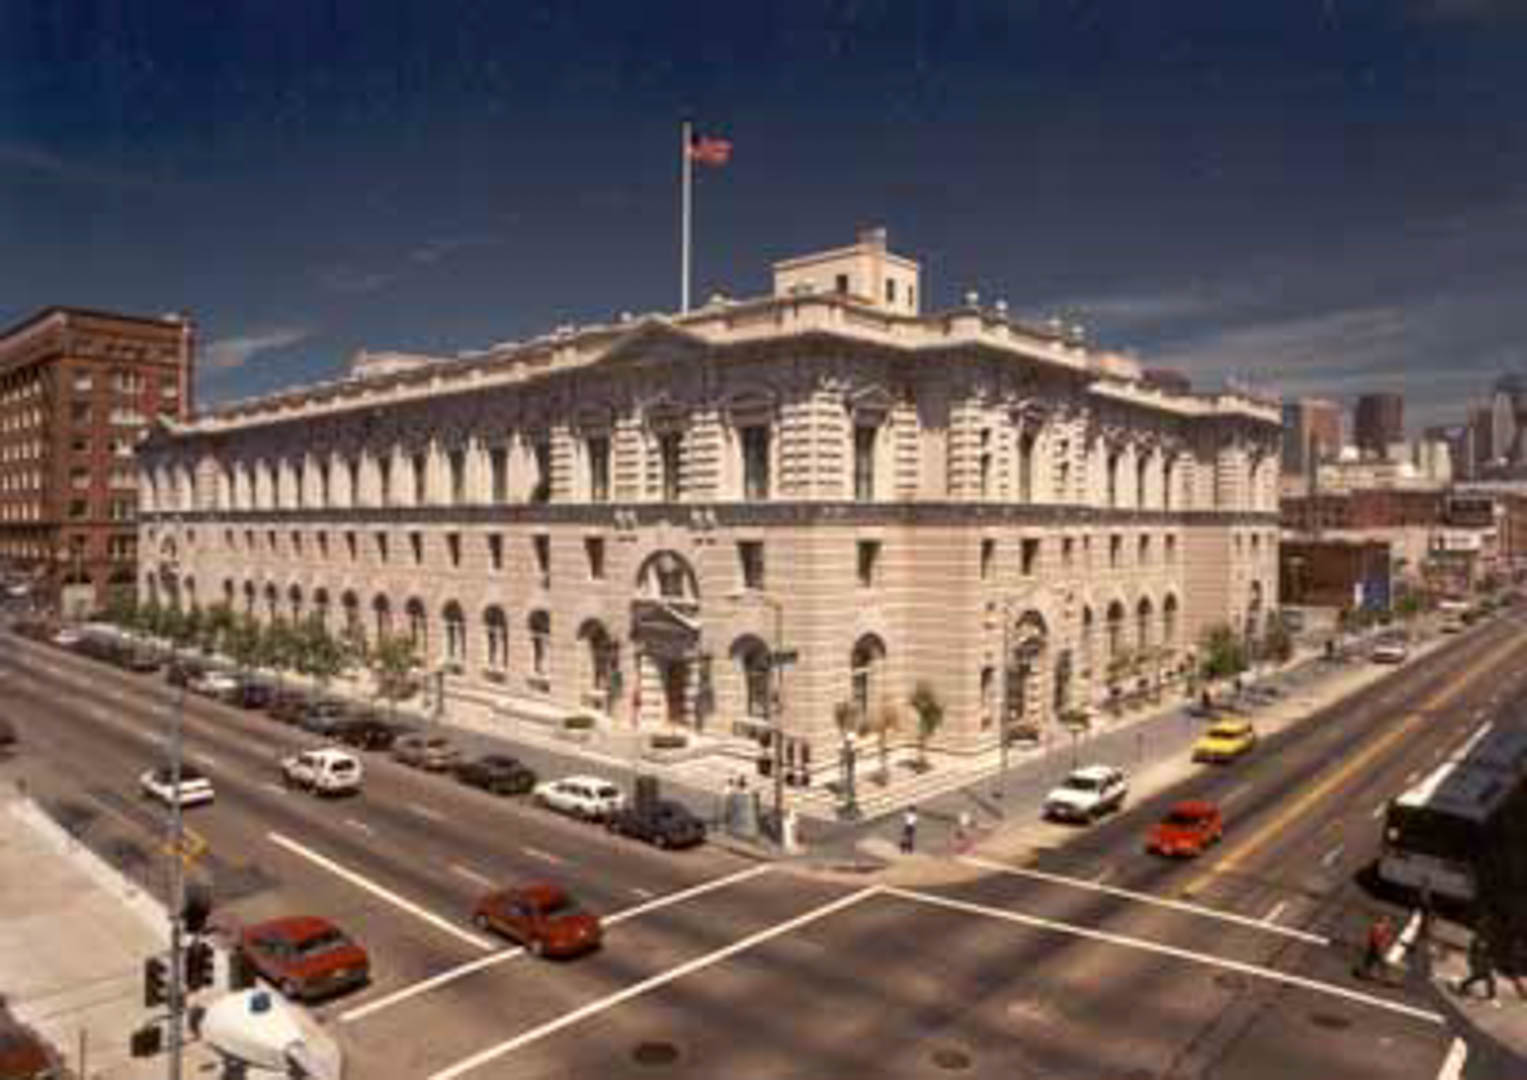 Project:  San Francisco U.S. Court of Appeals   Location:  San Francisco, California   Description:  Complete removal, salvage, reconfiguration and re-installation of exterior and interior historical stone.